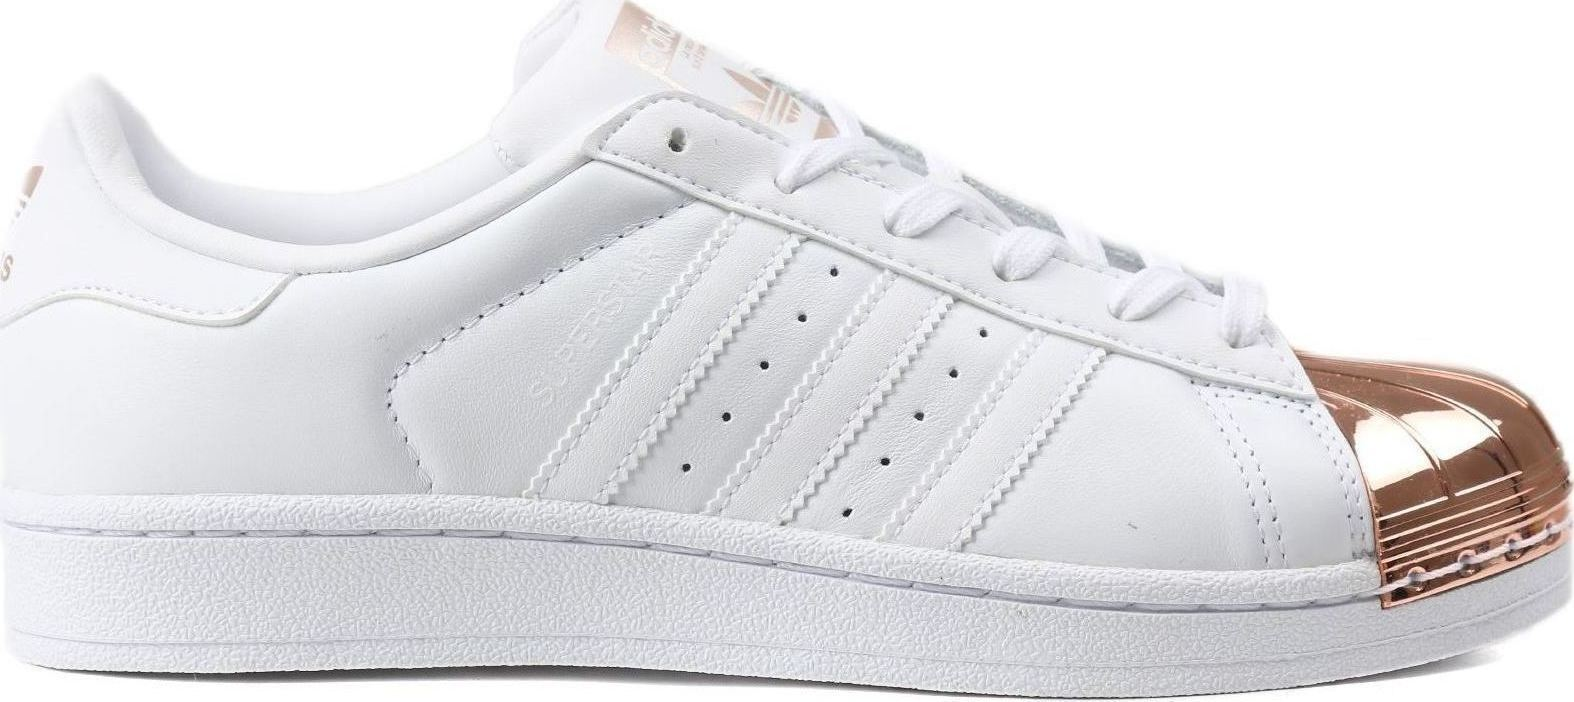 adidas superstar rose gold dames